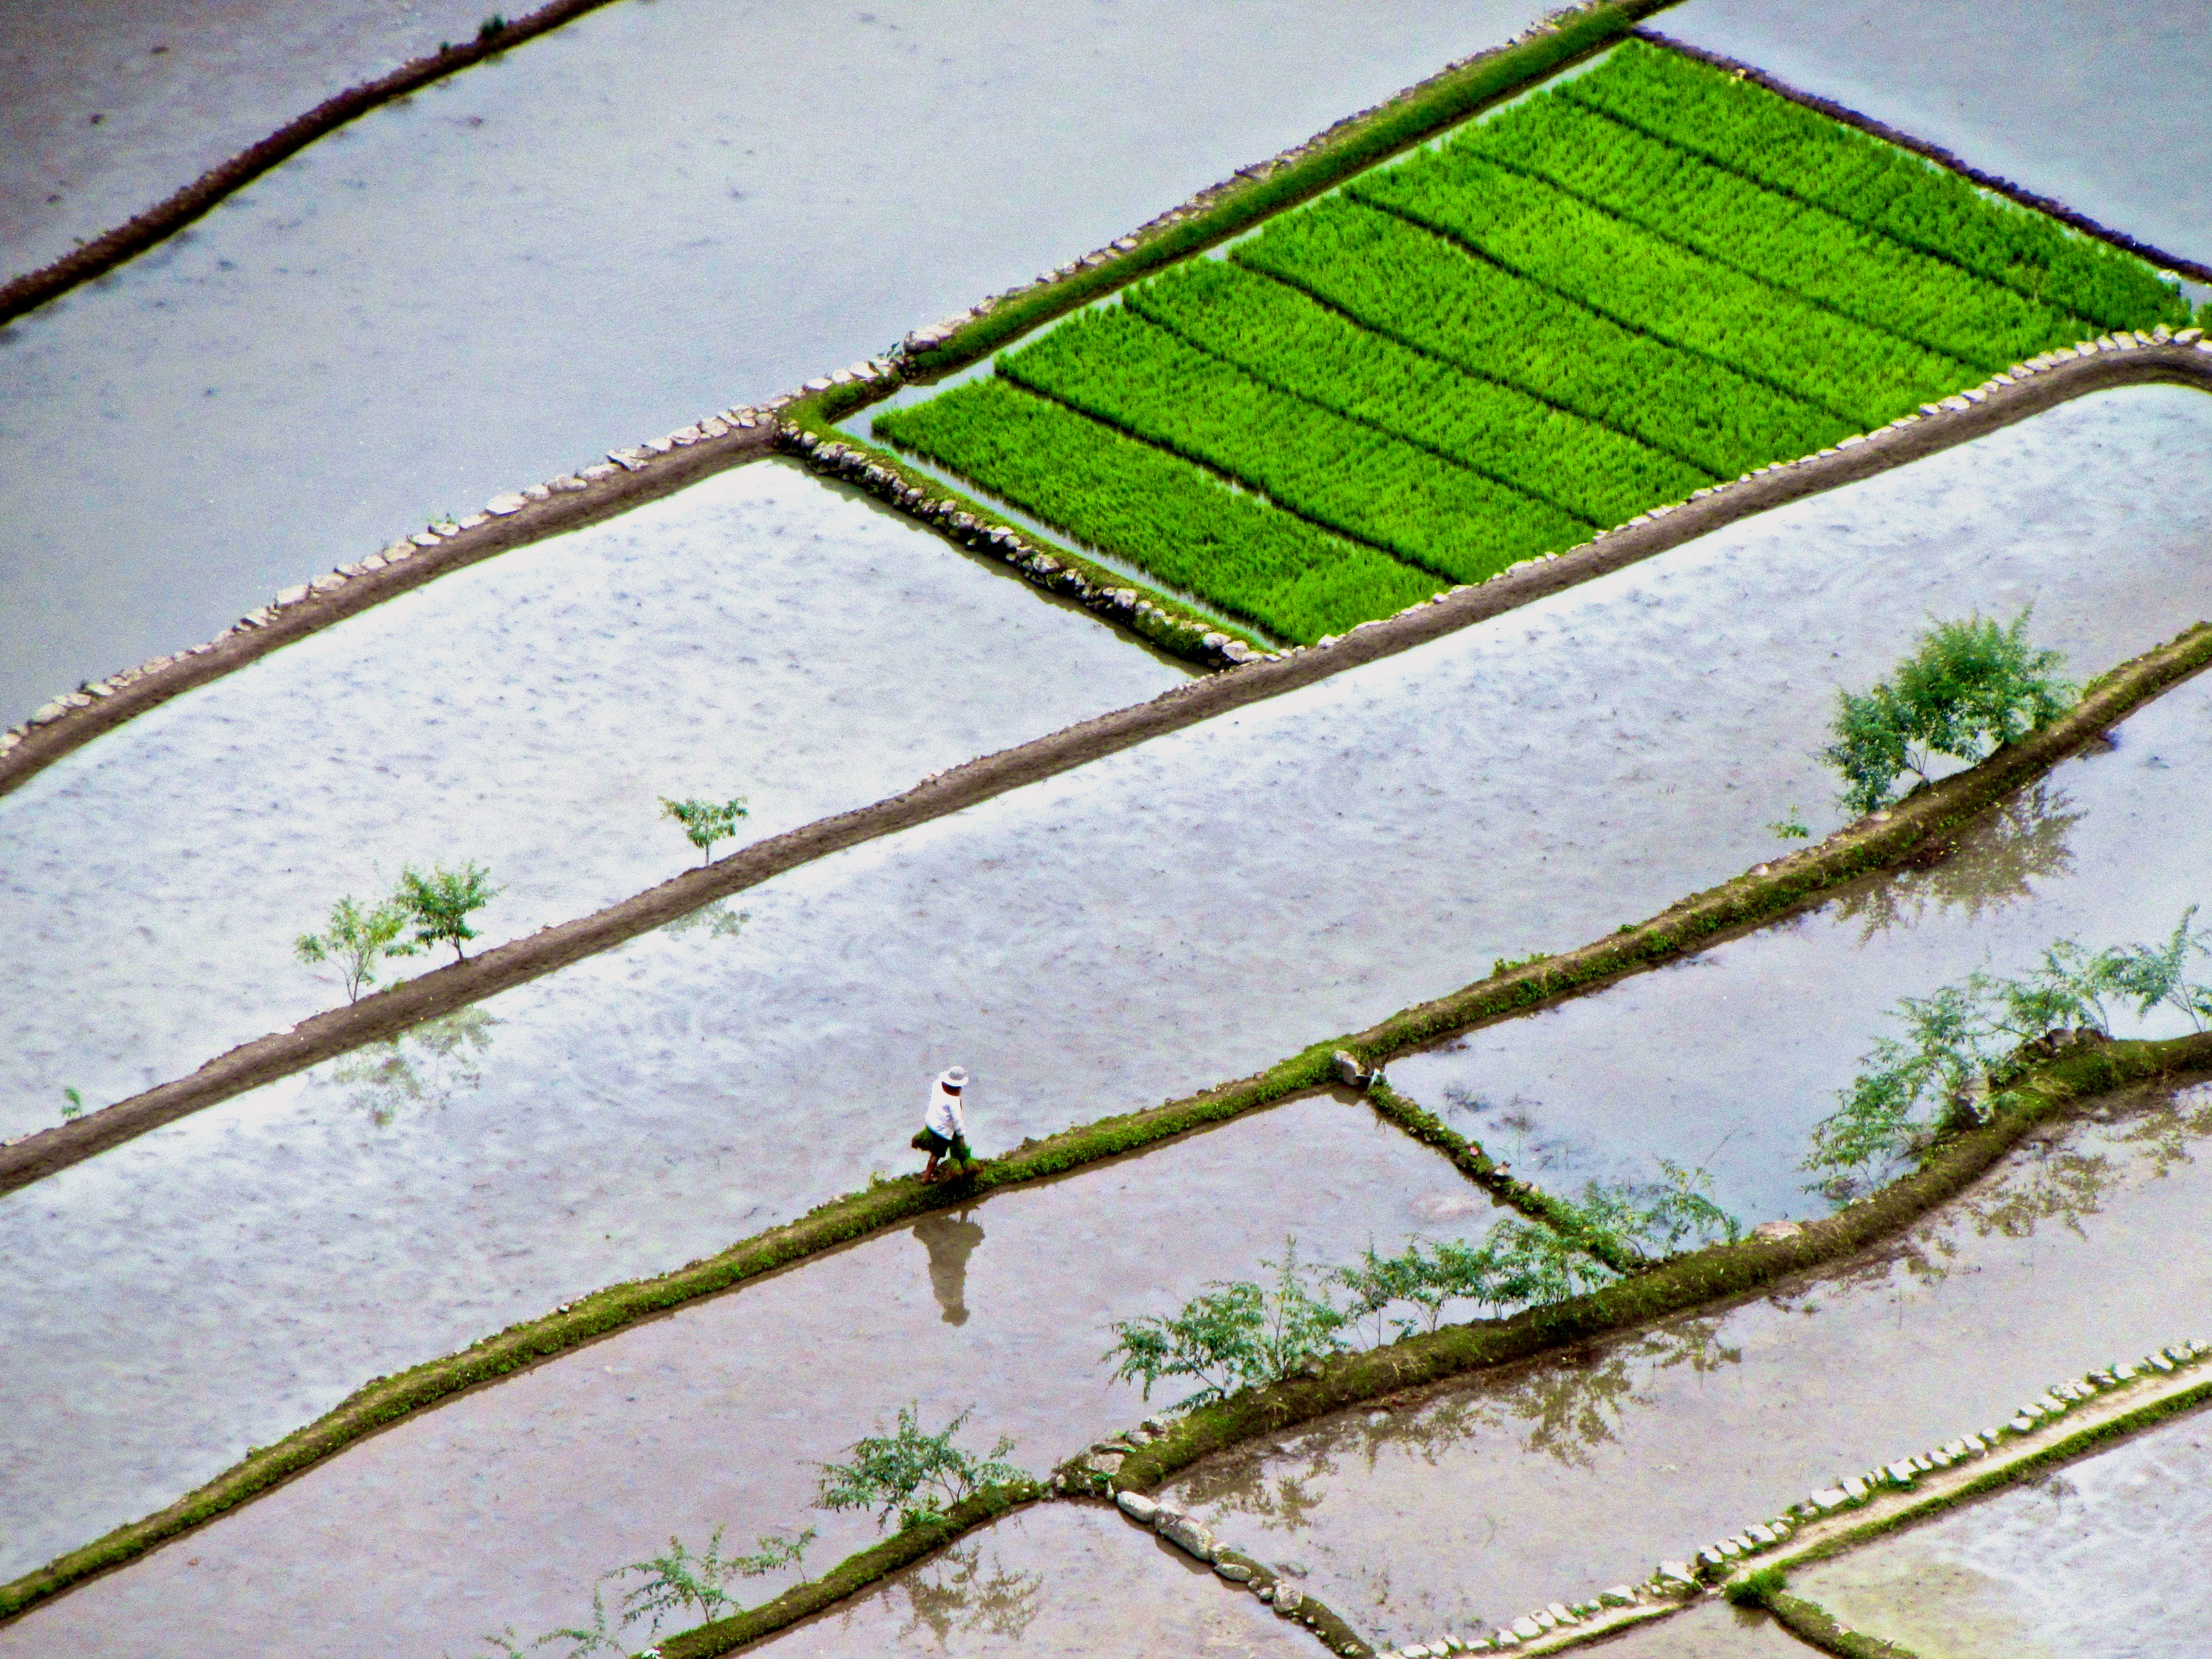 Agriculture Rice Planting be Seen Planting Rice in